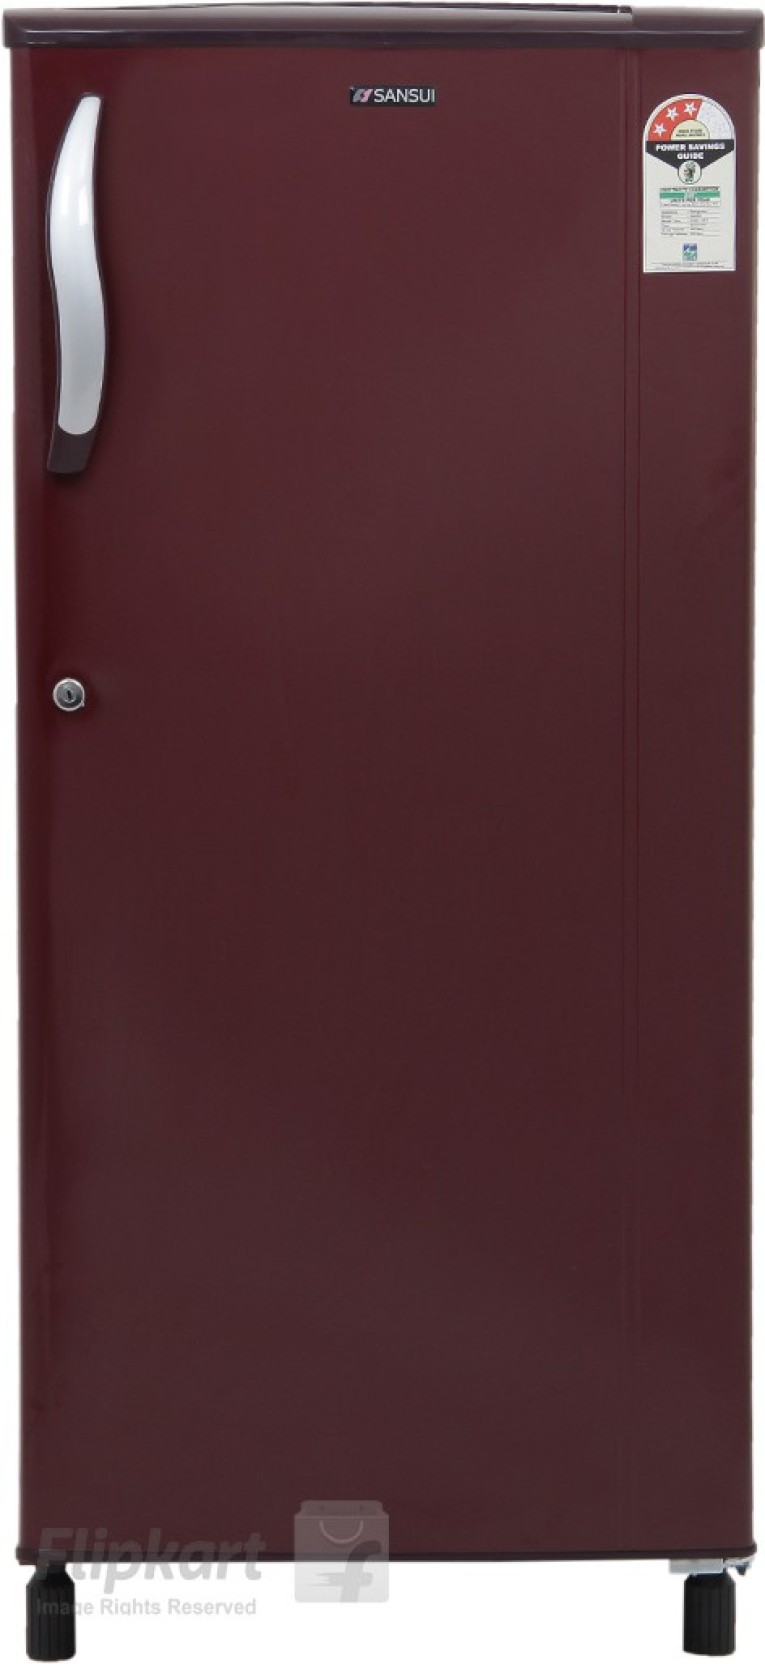 Sansui 190 L Direct Cool Single Door Refrigerator Online